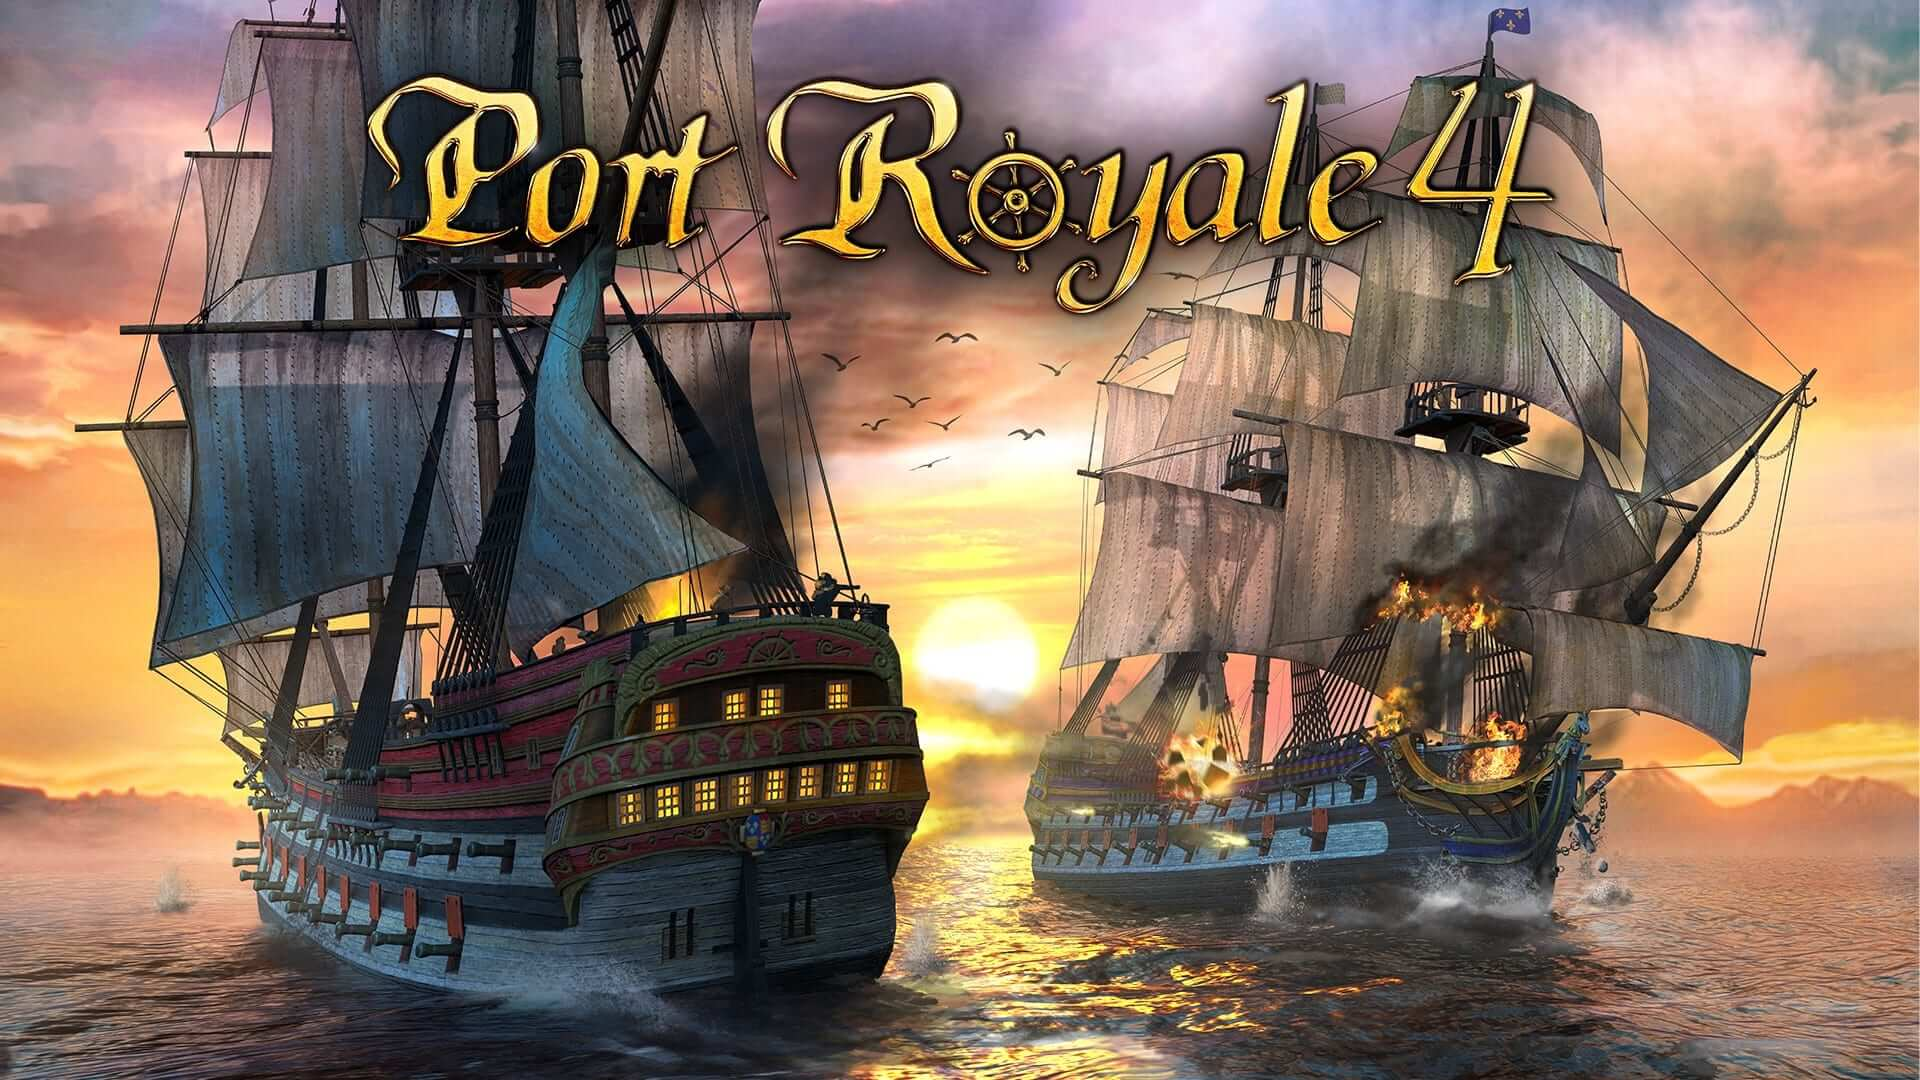 Port Royale 4 Released Today on Nintendo Switch